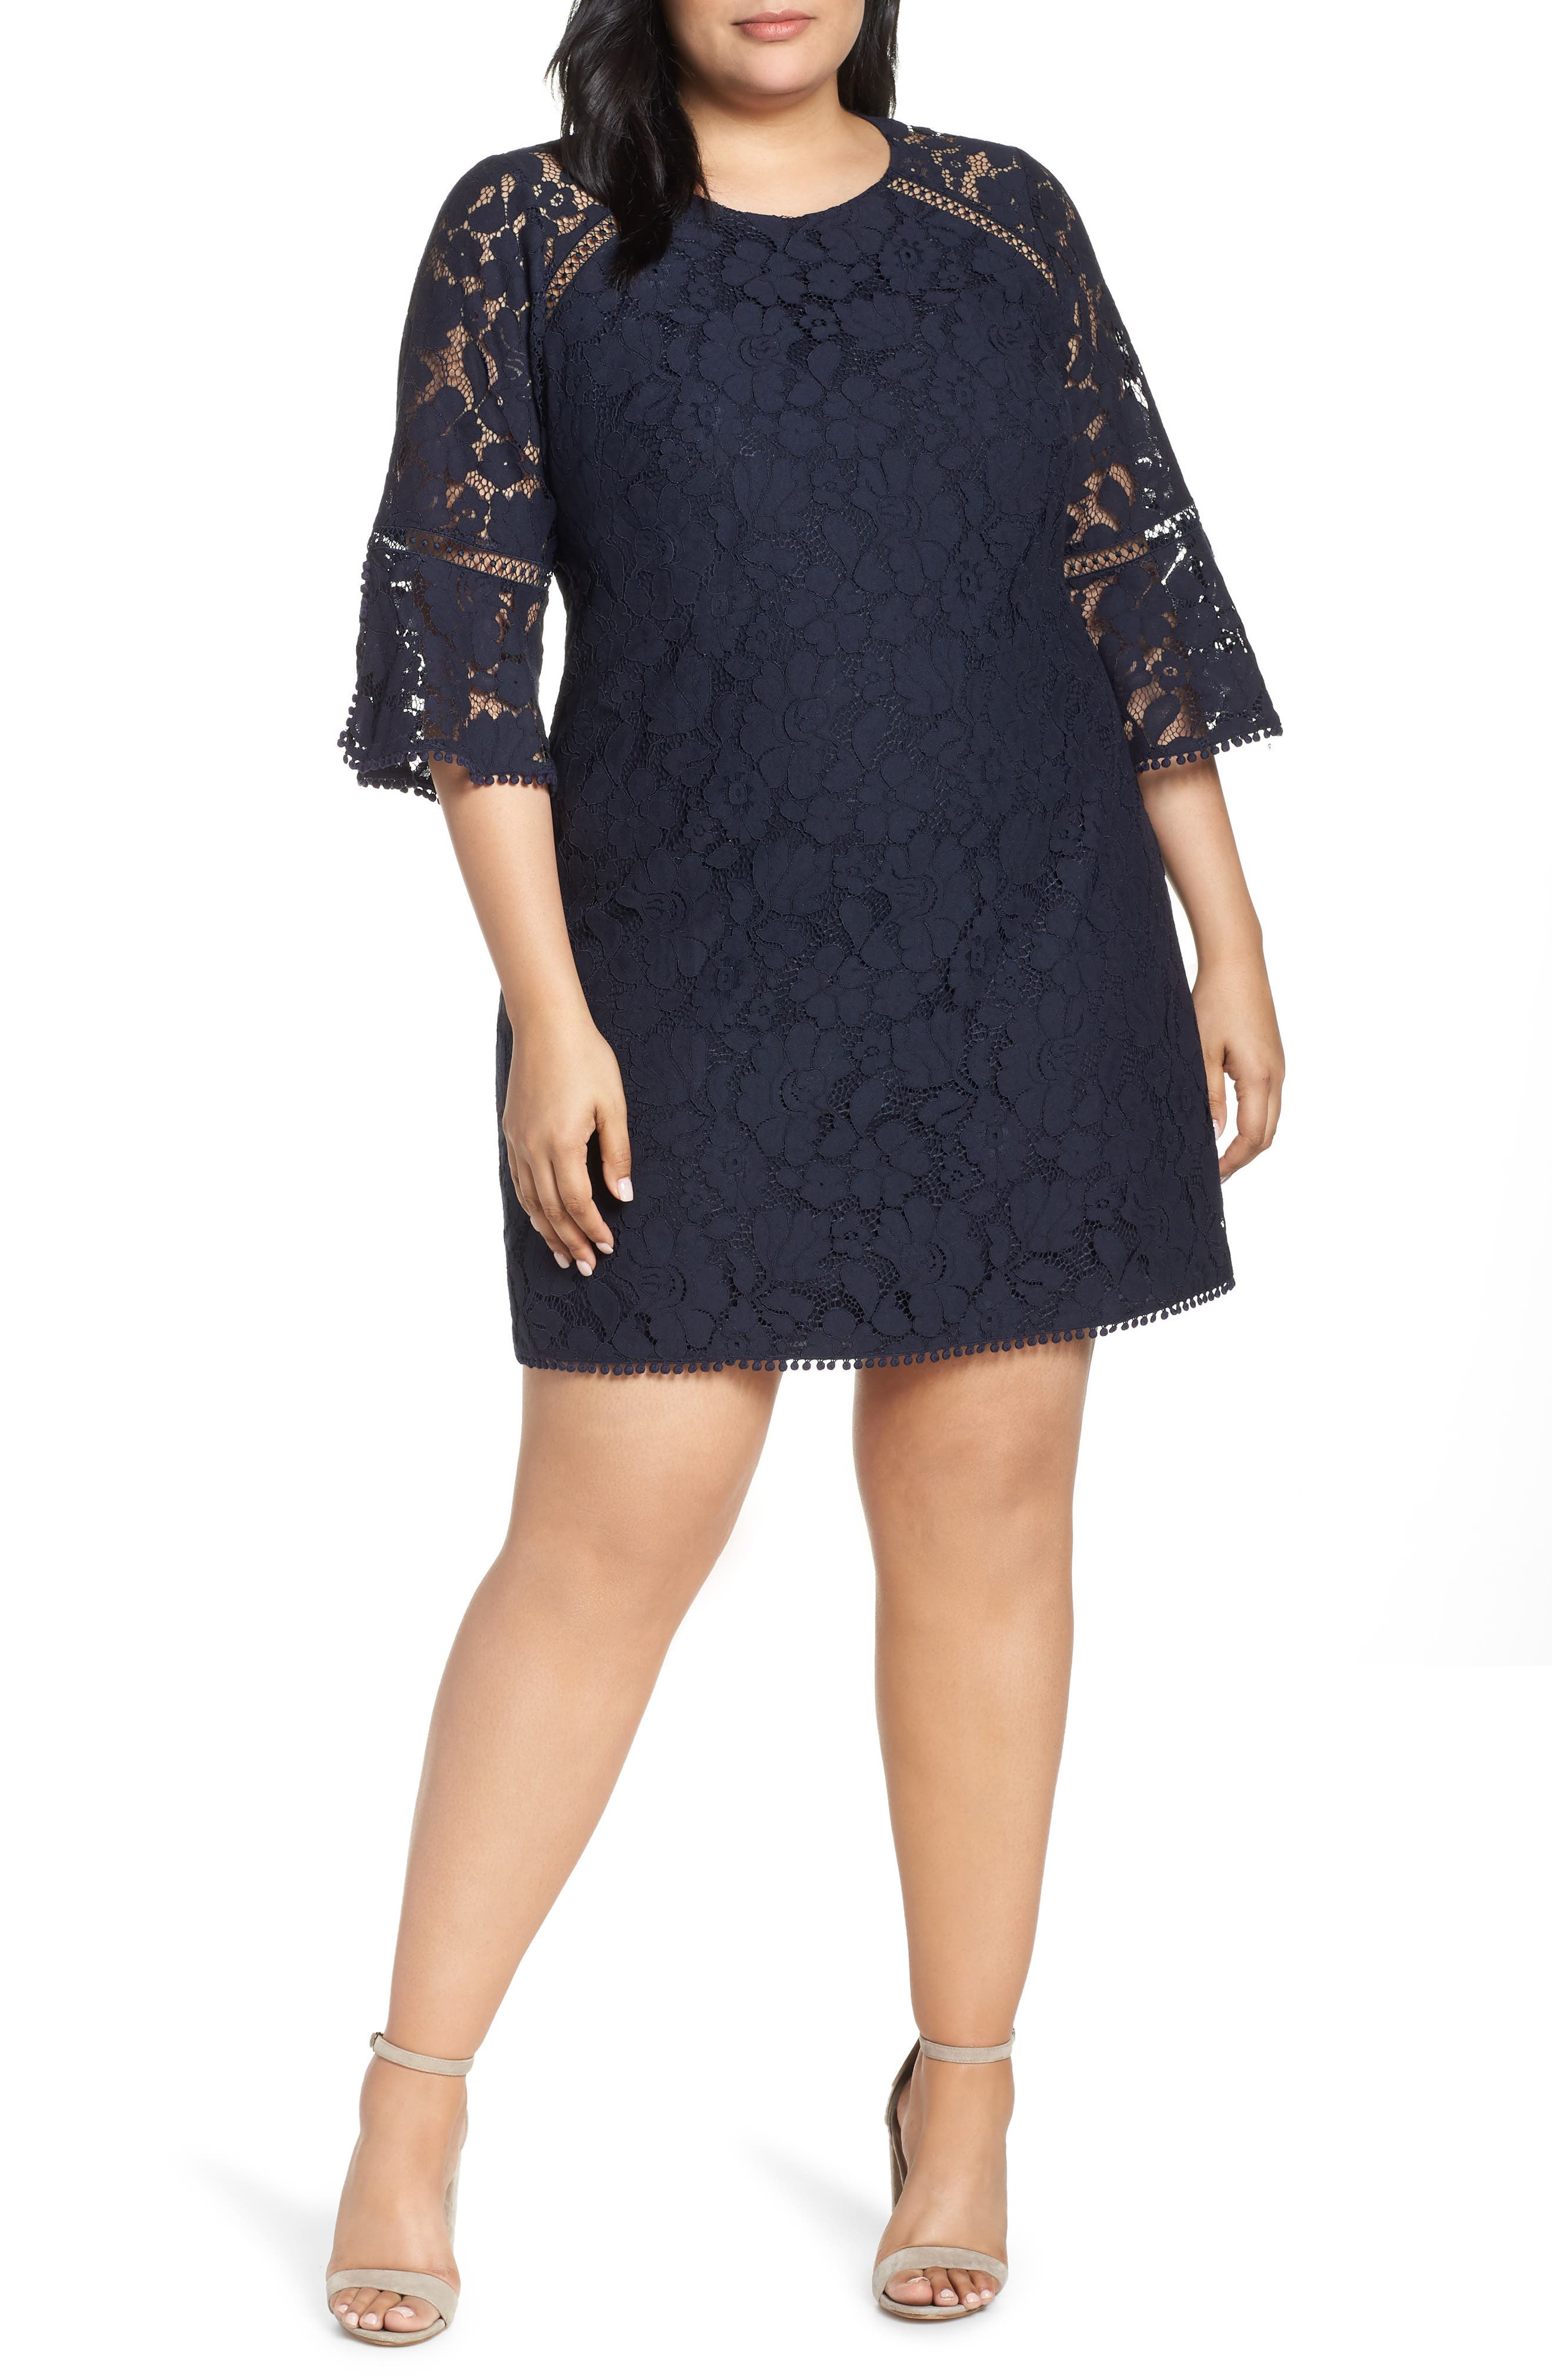 Plus Size Vince Camuto Bell Sleeve Lace Dress